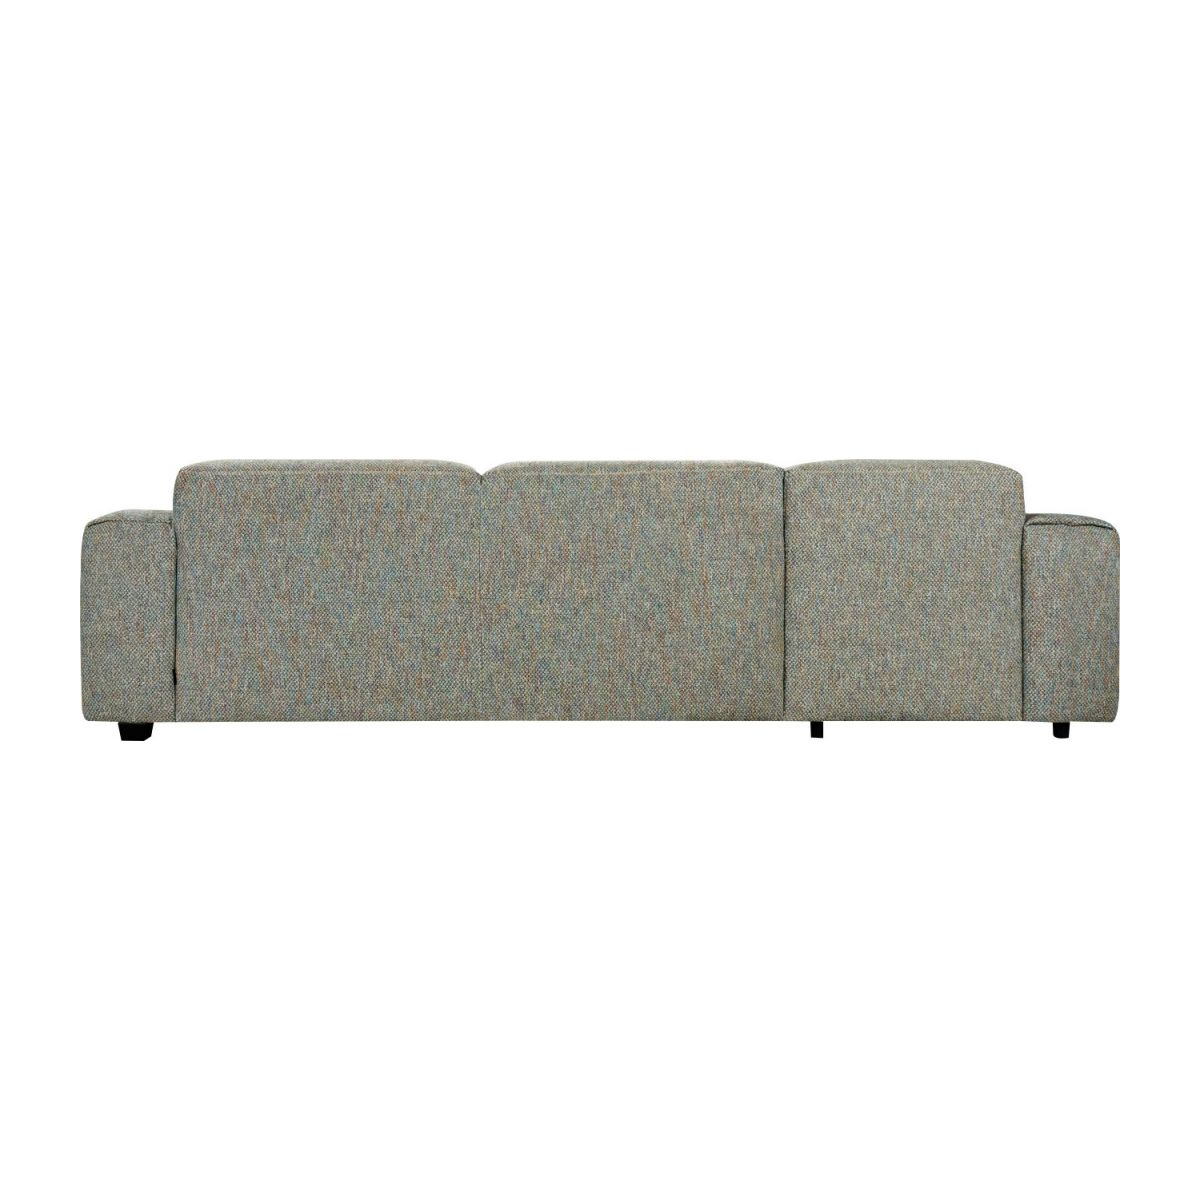 3-Sitzer Sofa mit Chaiselongue links aus Stoff Bellagio organic green n°5